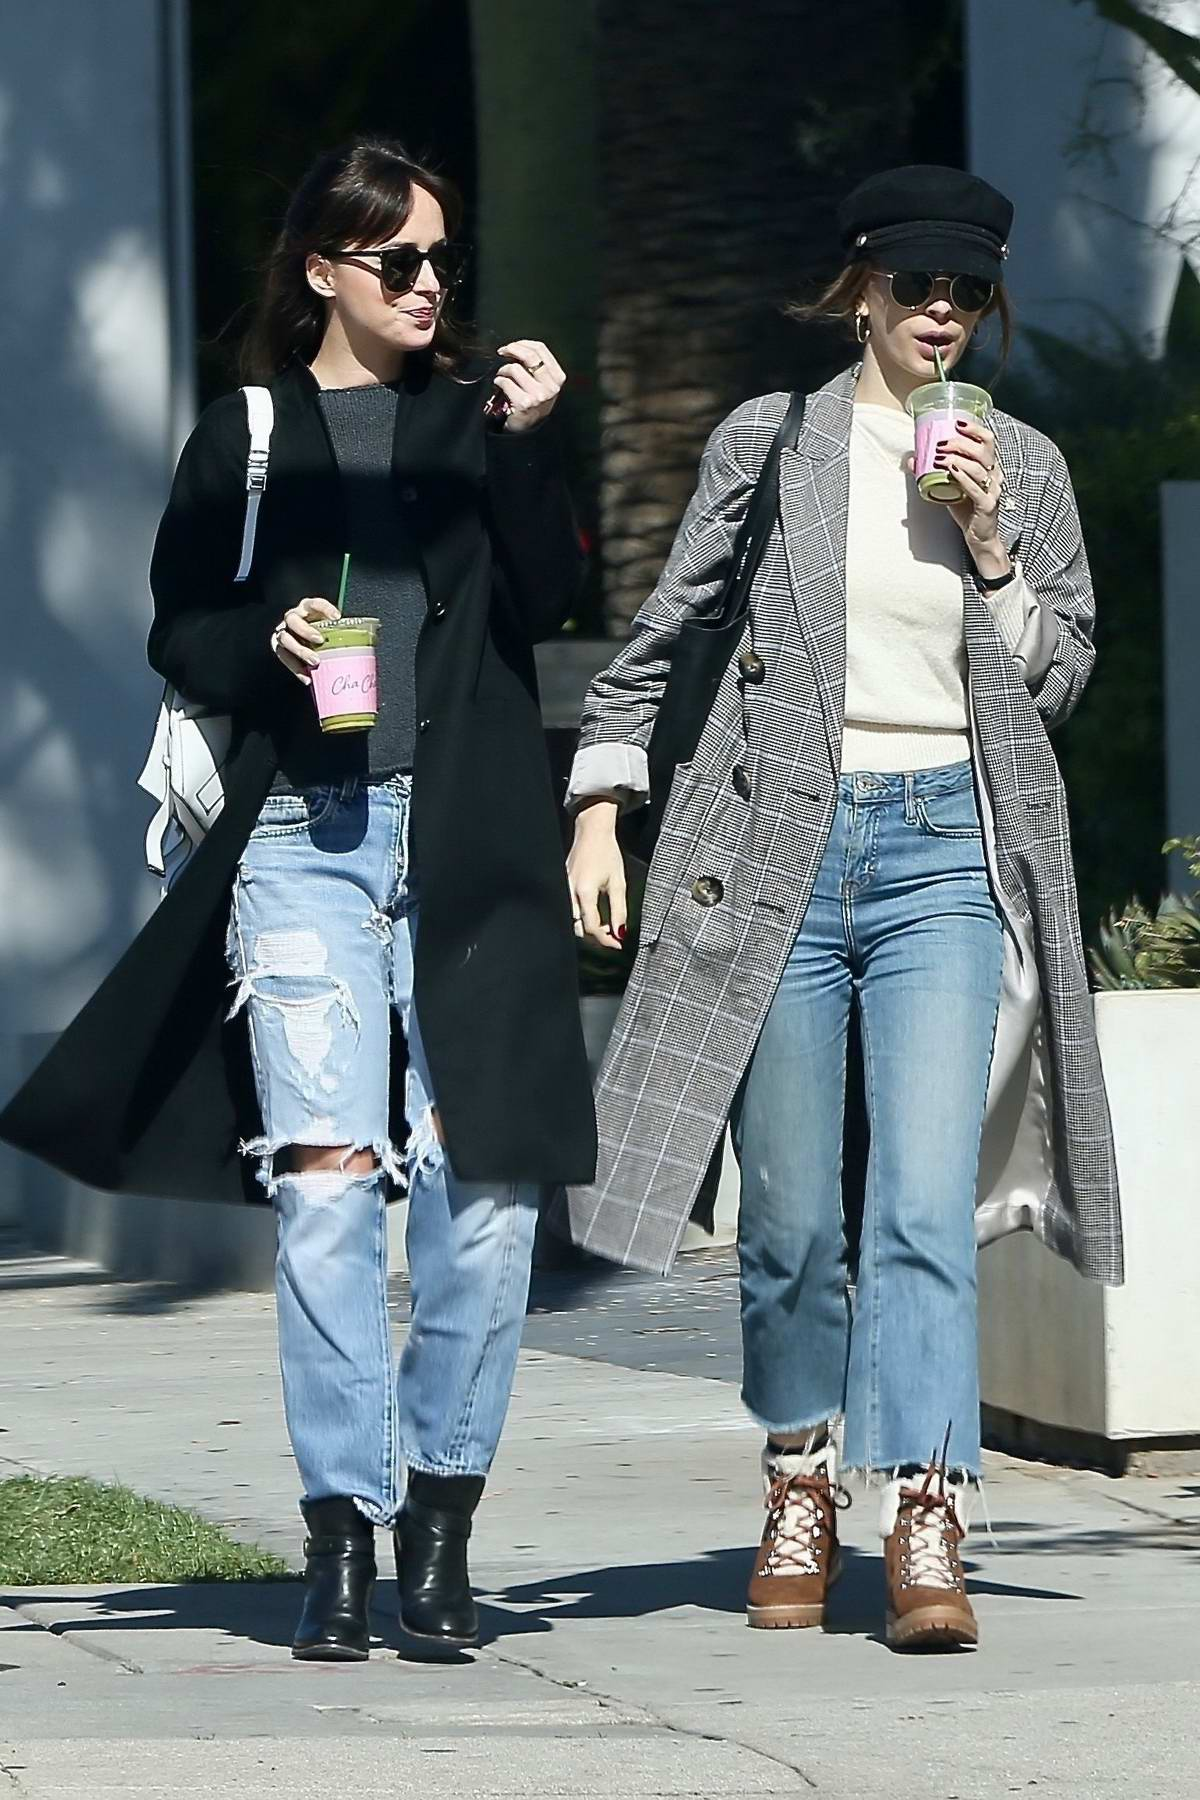 Dakota Johnson and Roisin Donnelly grab a juice together in West Hollywood, Los Angeles